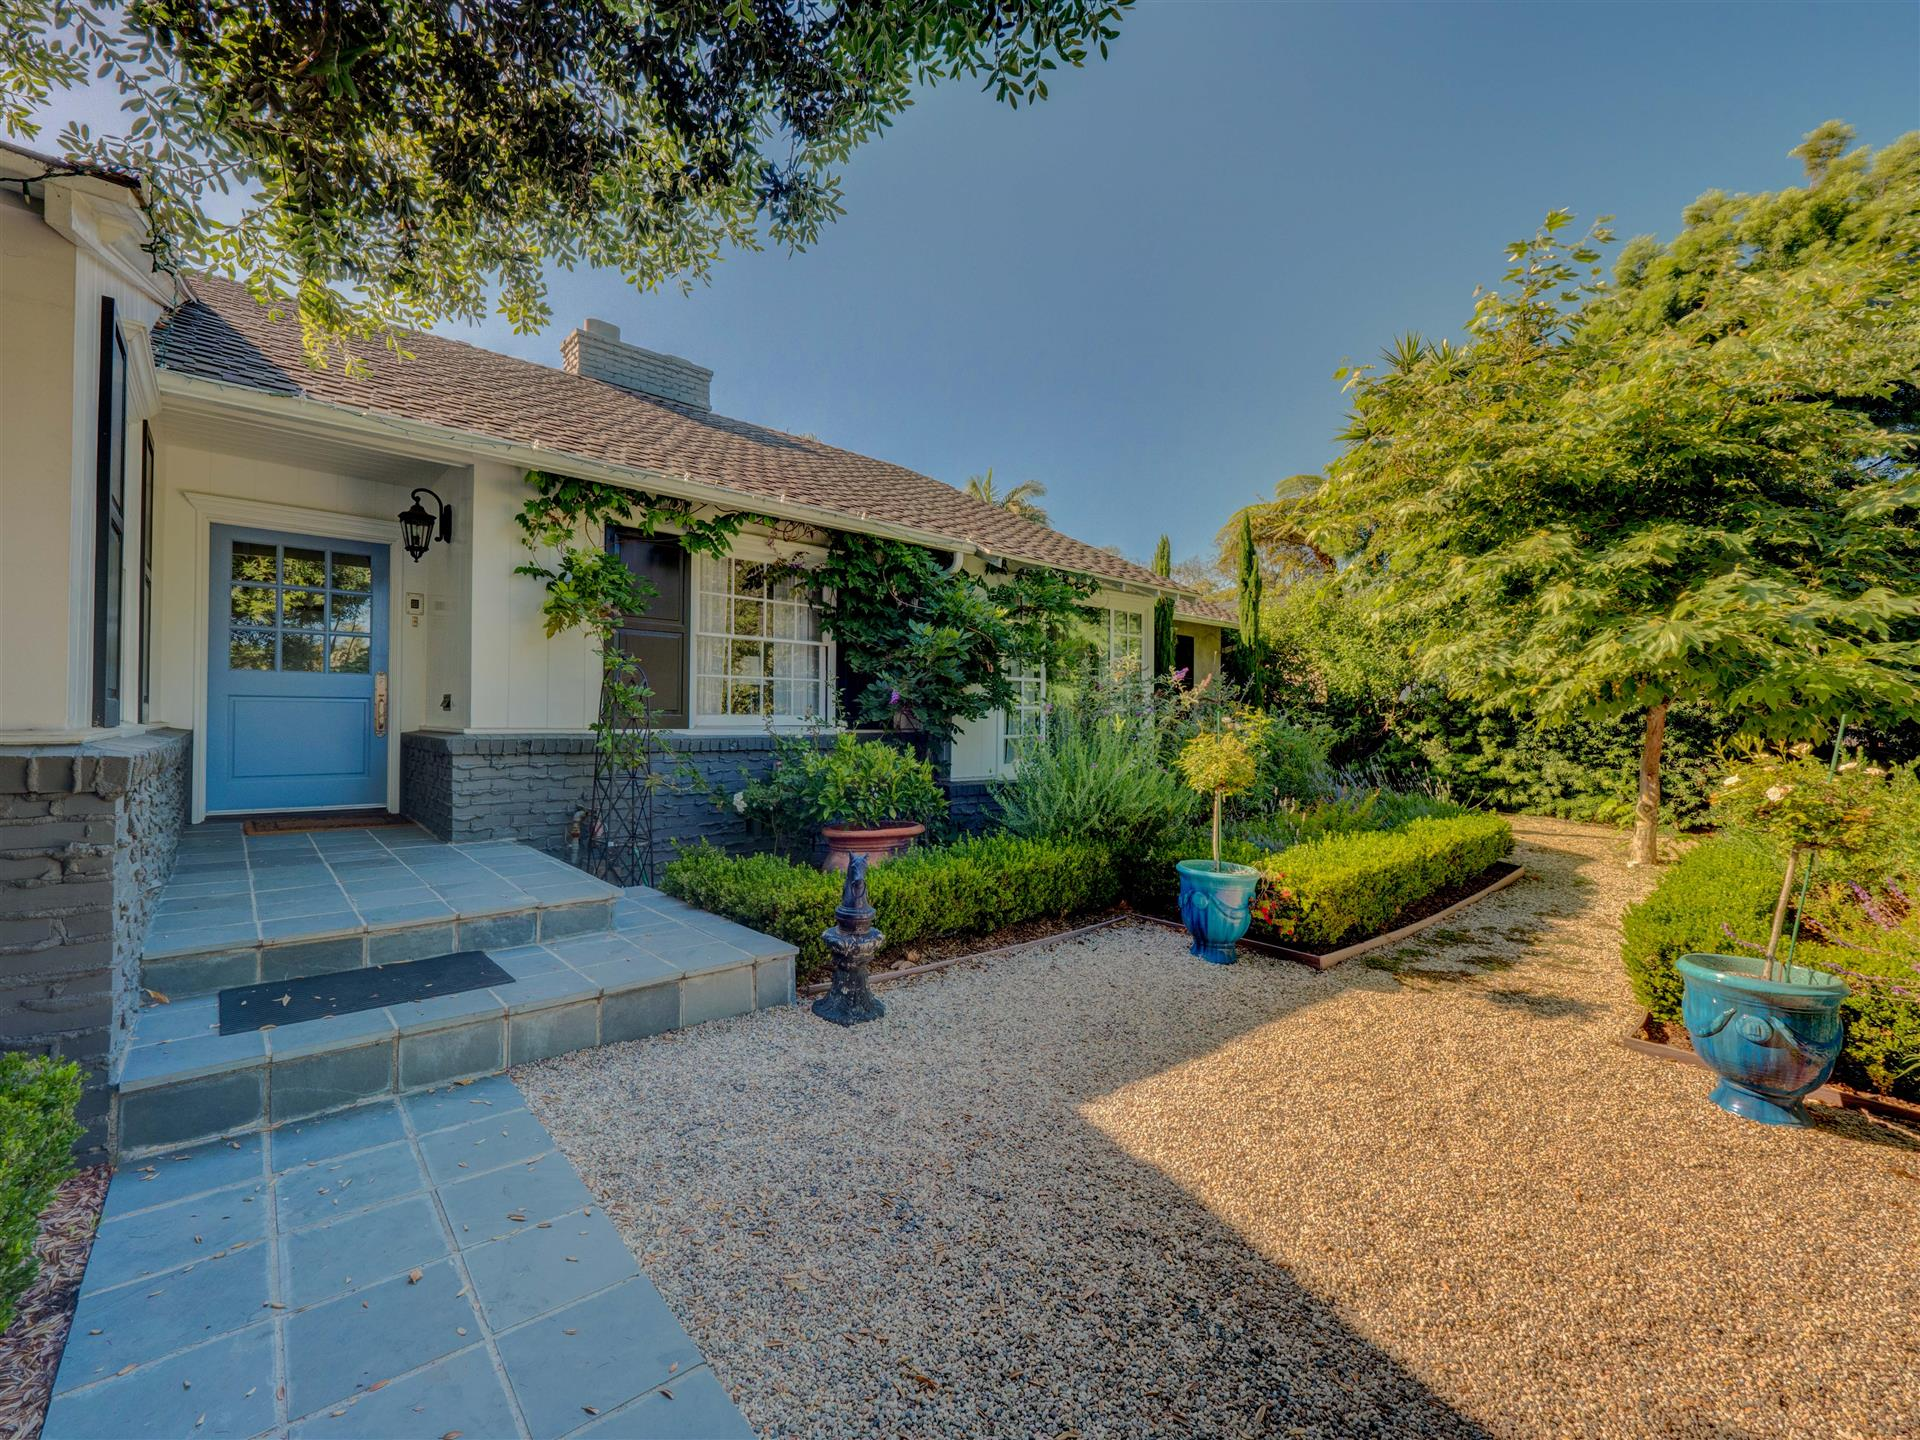 815 San Vicente,Santa Monica,California 90402,4 Bedrooms Bedrooms,3.5 BathroomsBathrooms,Home,San Vicente,1058